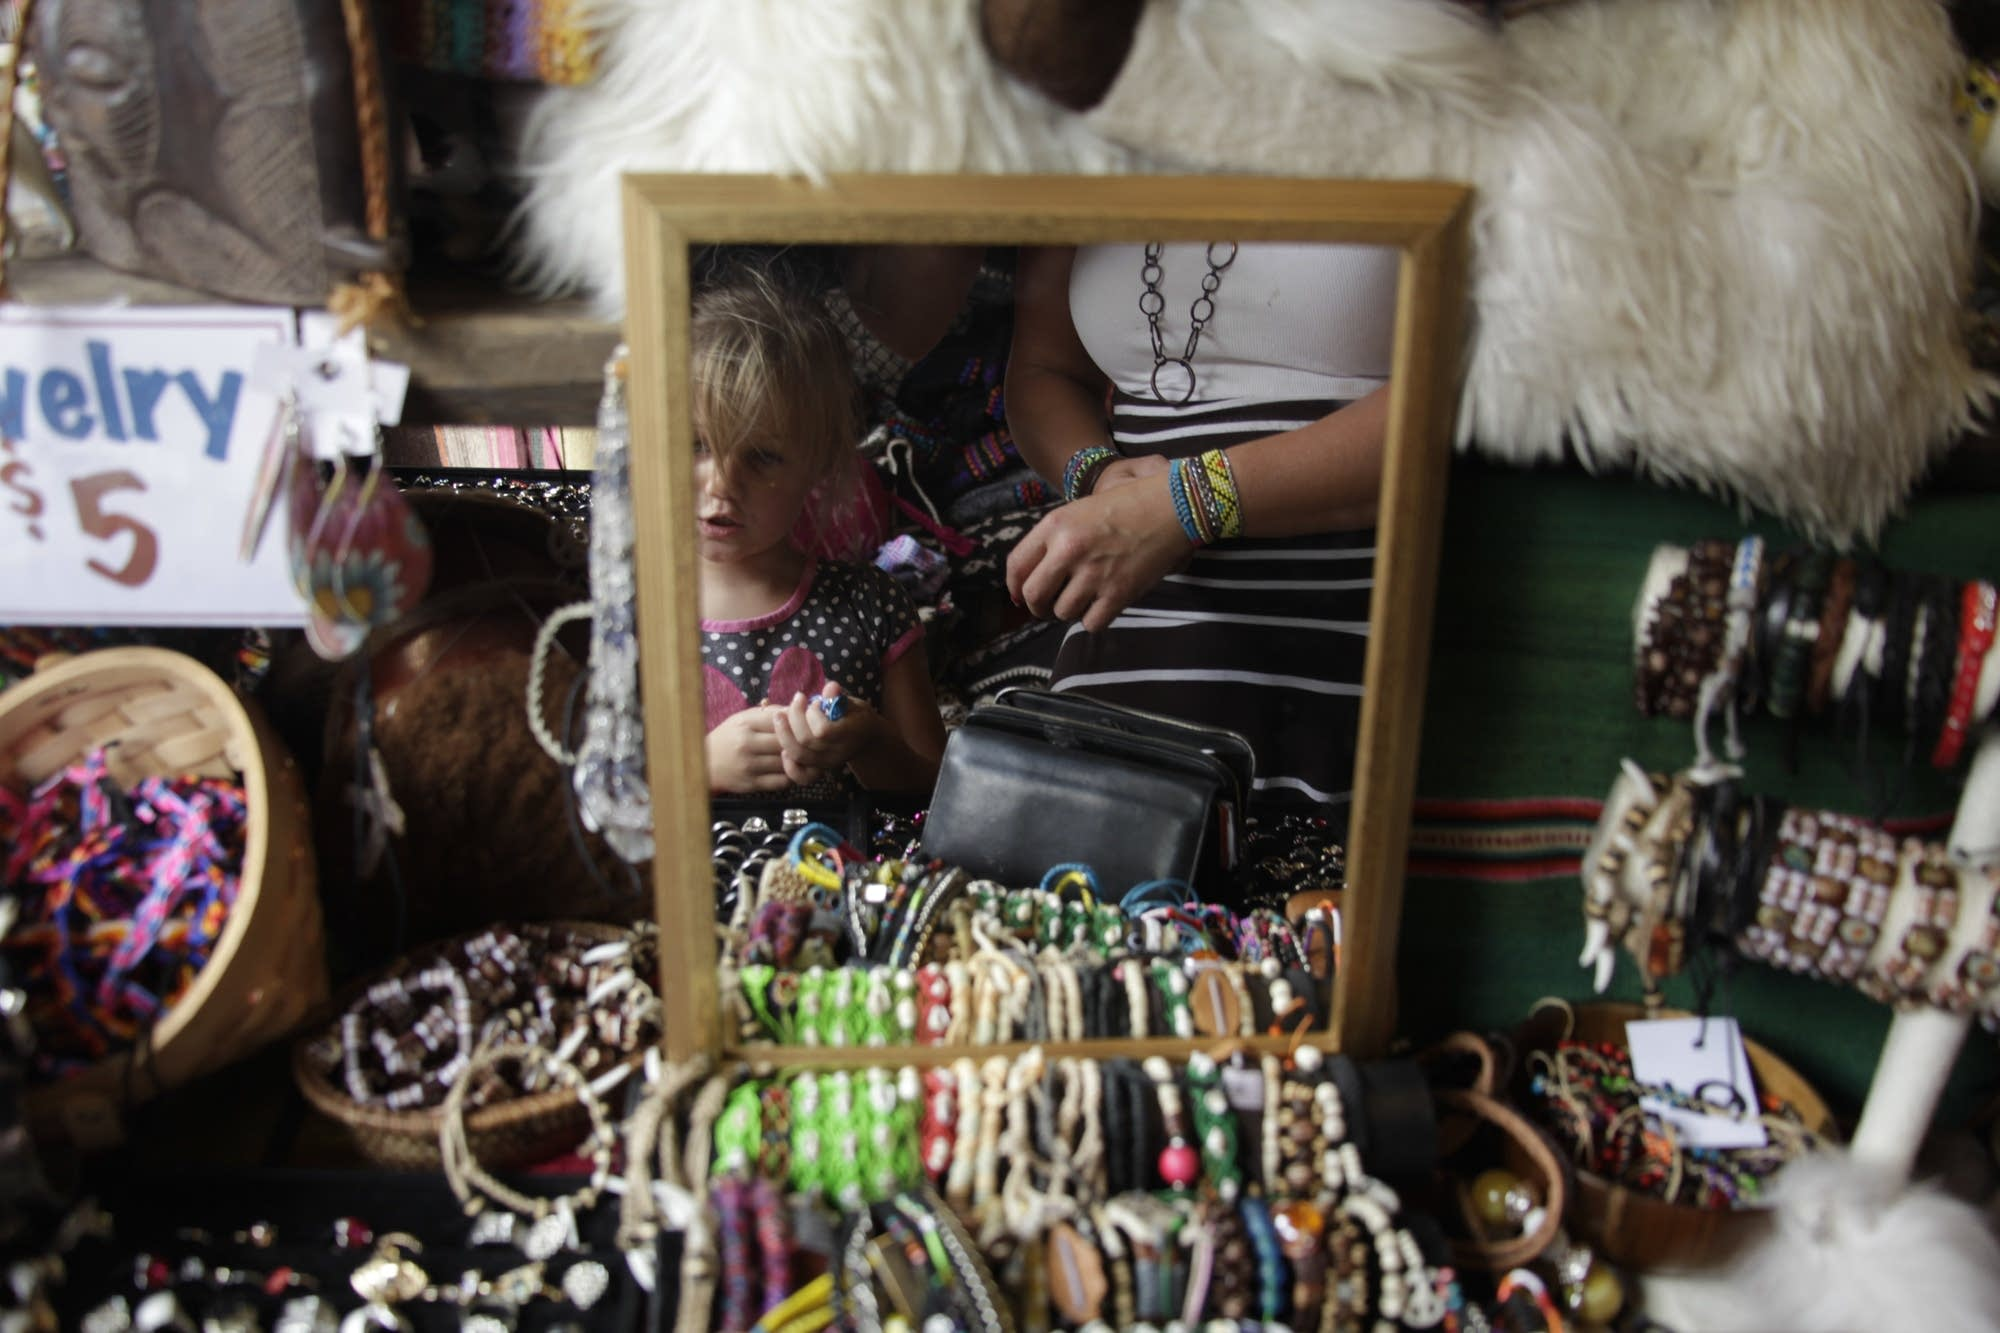 Sophia Nelson tries on bracelets with her mom.